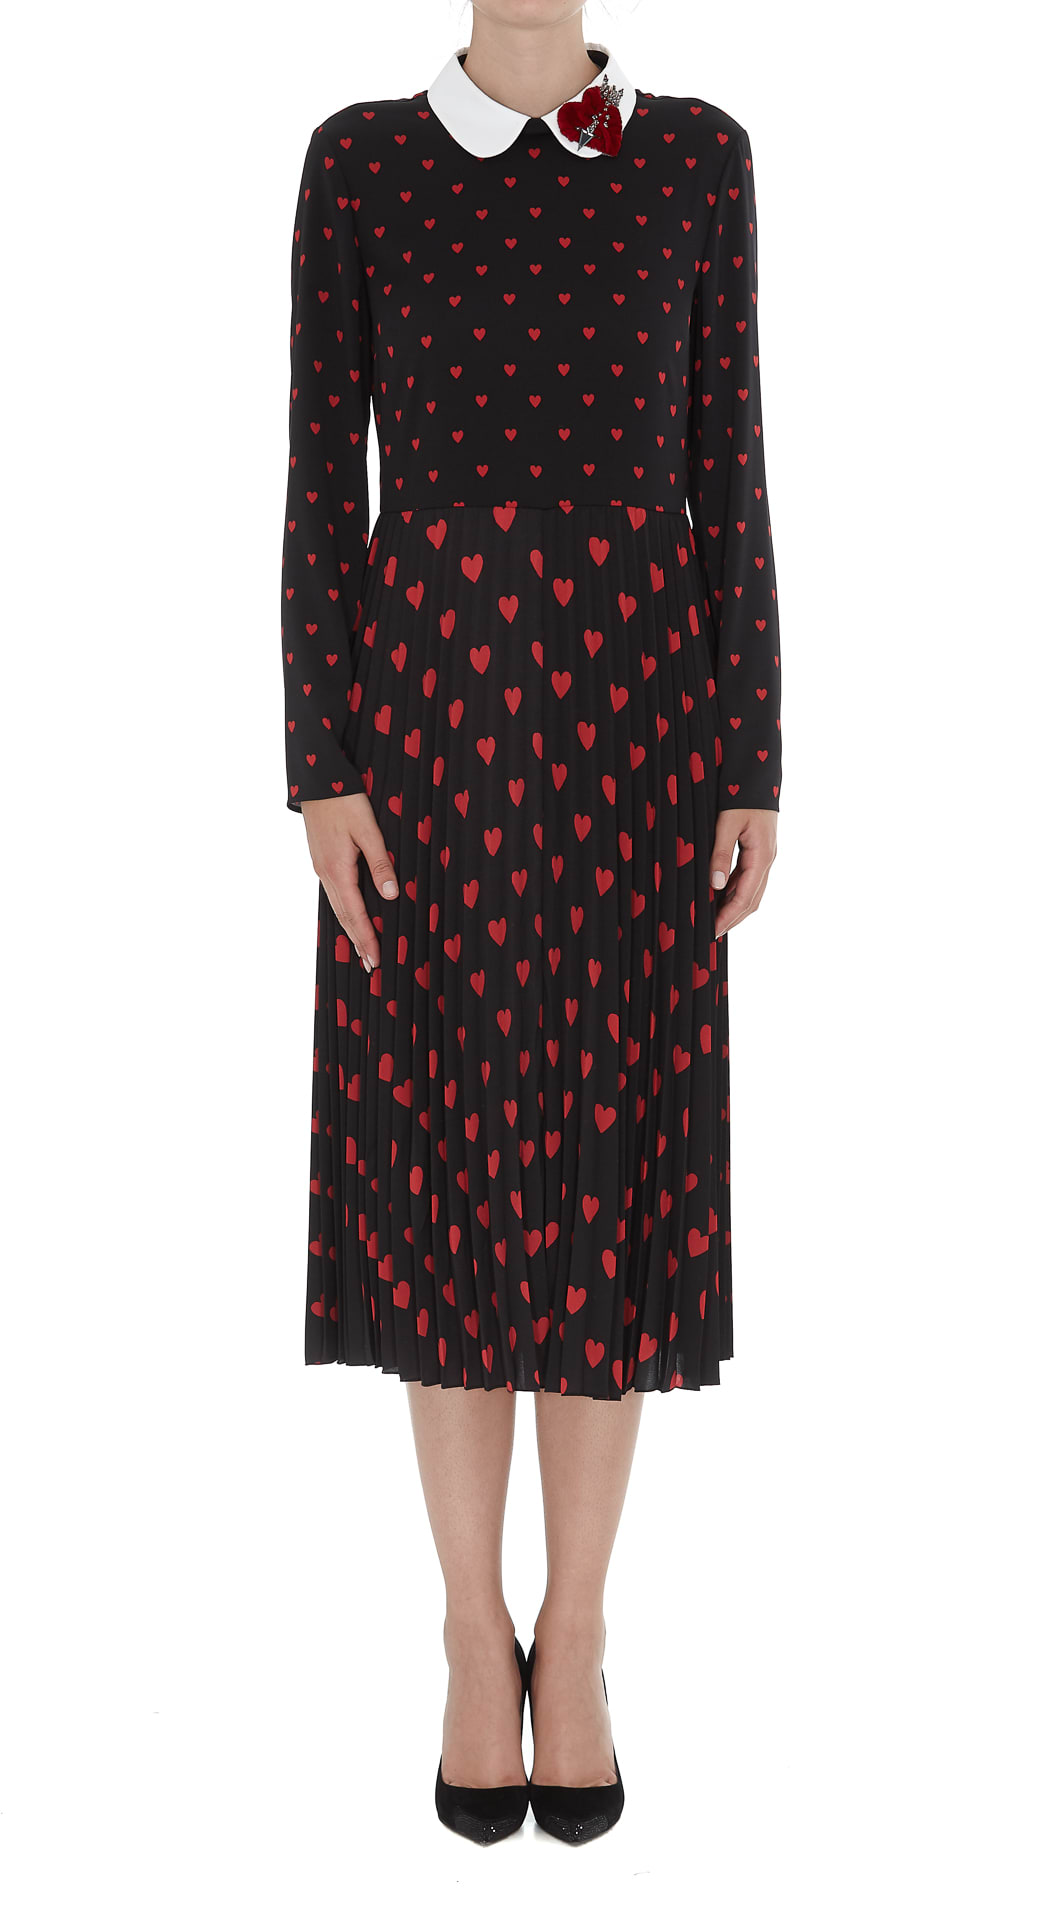 Red Valentino Hearts Print Detail Heart Patch Dress